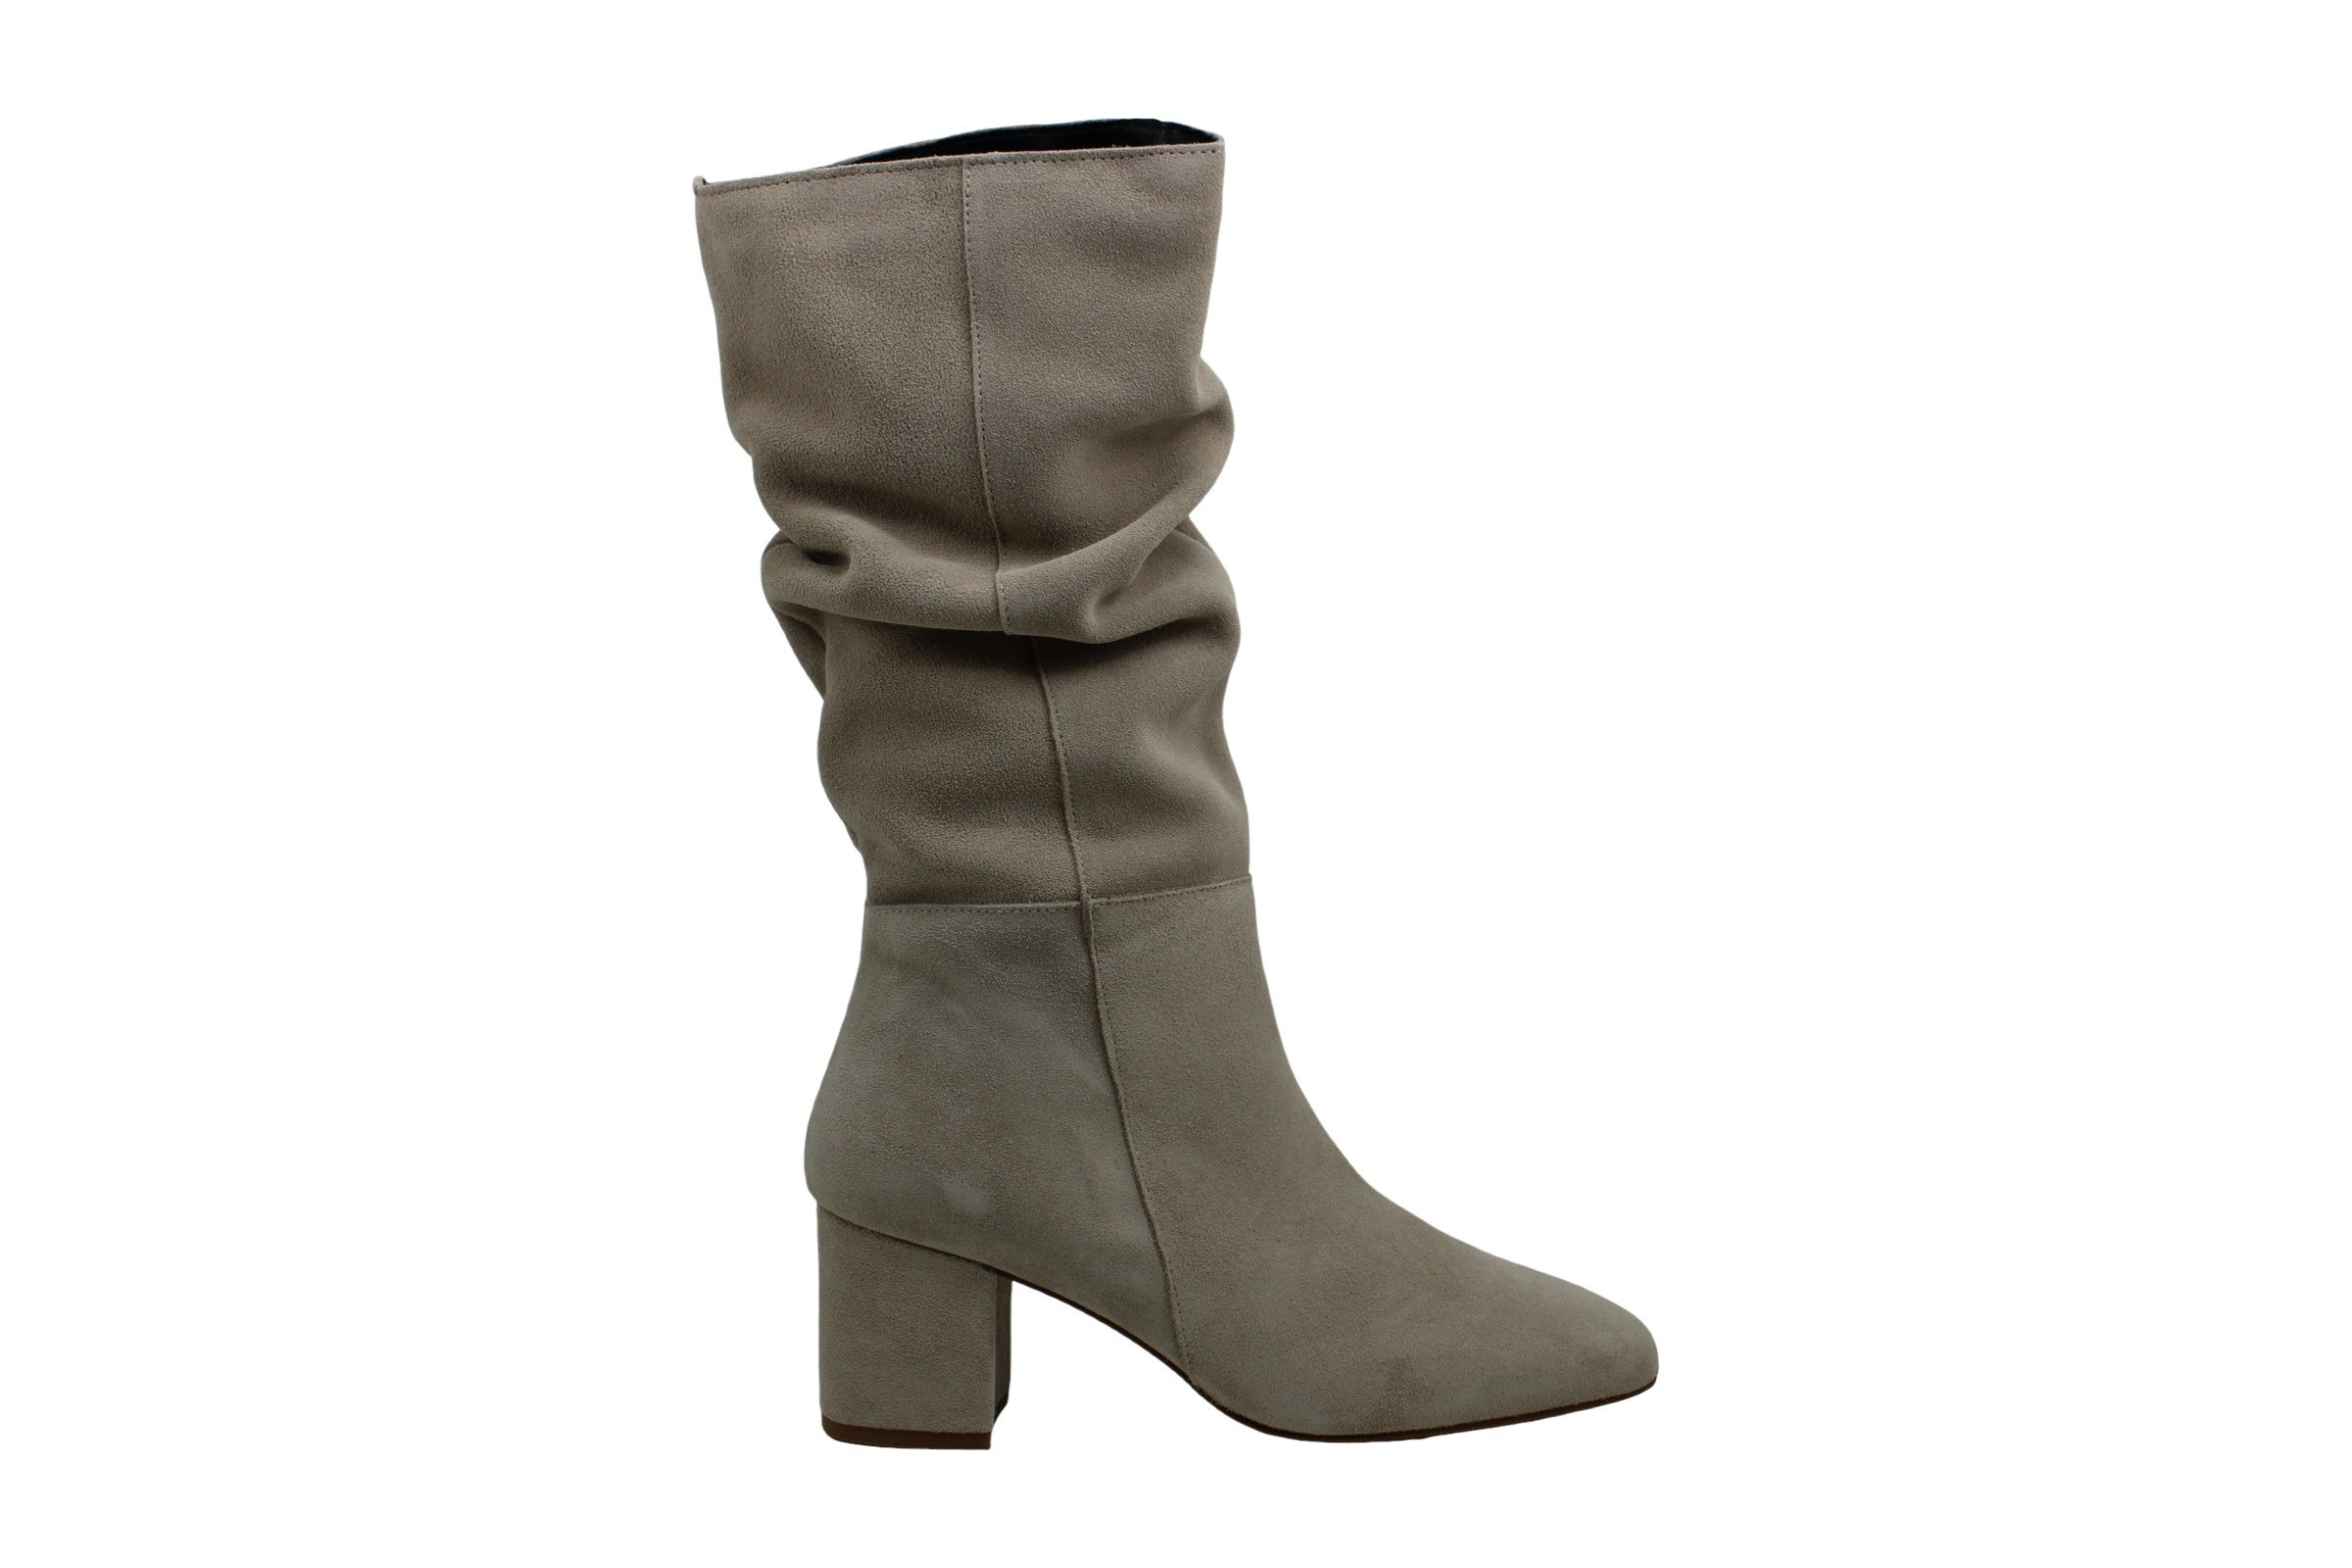 Steven by Steve Madden Womens Dilemma Suede Square Toe Mid-Calf Fashion Boots US